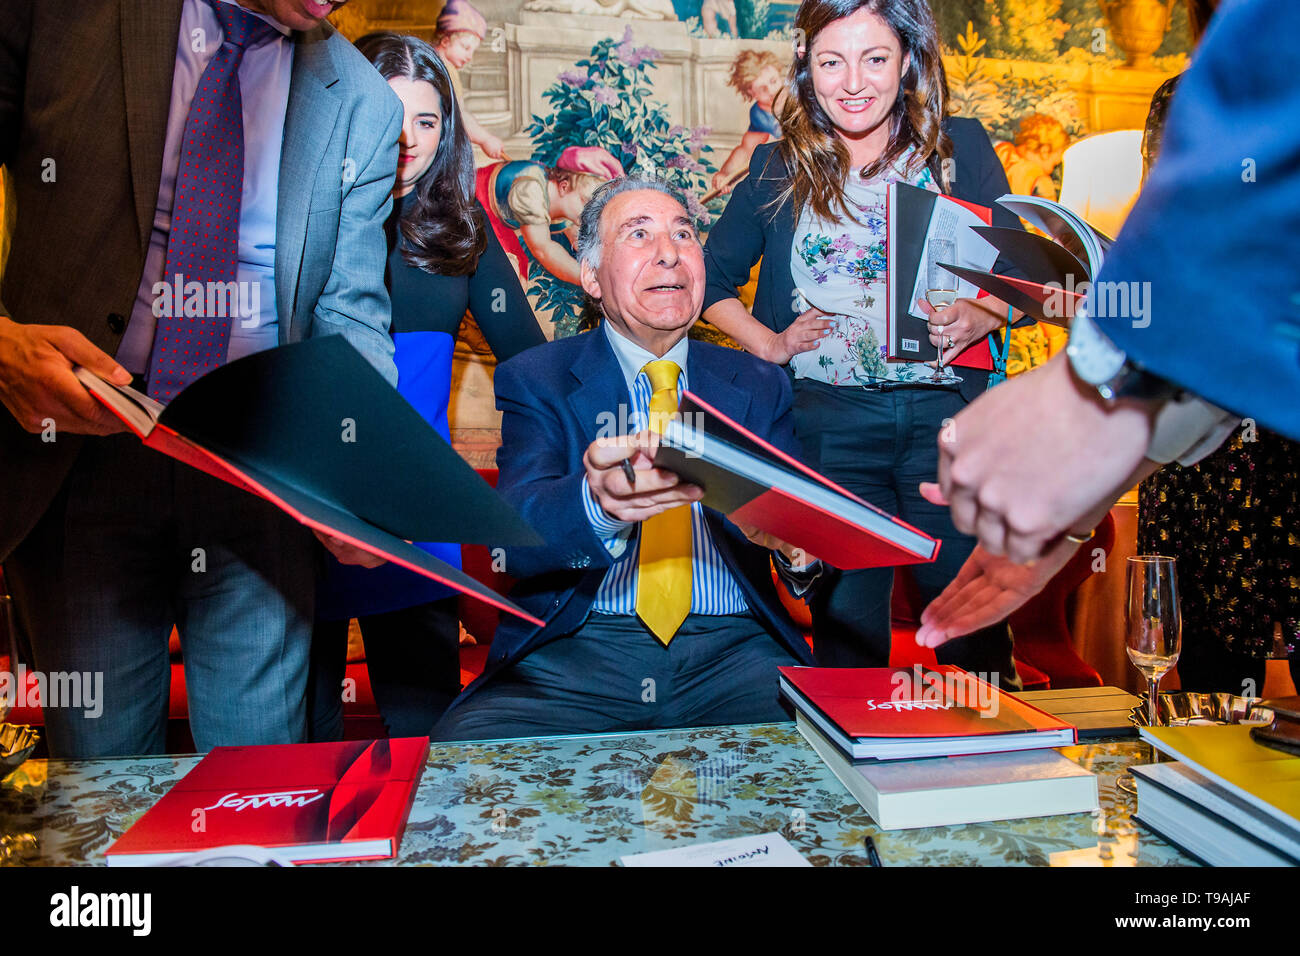 London, UK. 16th May 2019. Pino Manos signs copies of the book of his works - The launch party for Spaziale! at Opera Gallery London at the Italian Embassy.The exhibition includes 40 iconic canvases by Lucio Fontana, Agostino Bonalumi and Enrico Castellani among others. Credit: Guy Bell/Alamy Live News - Stock Image